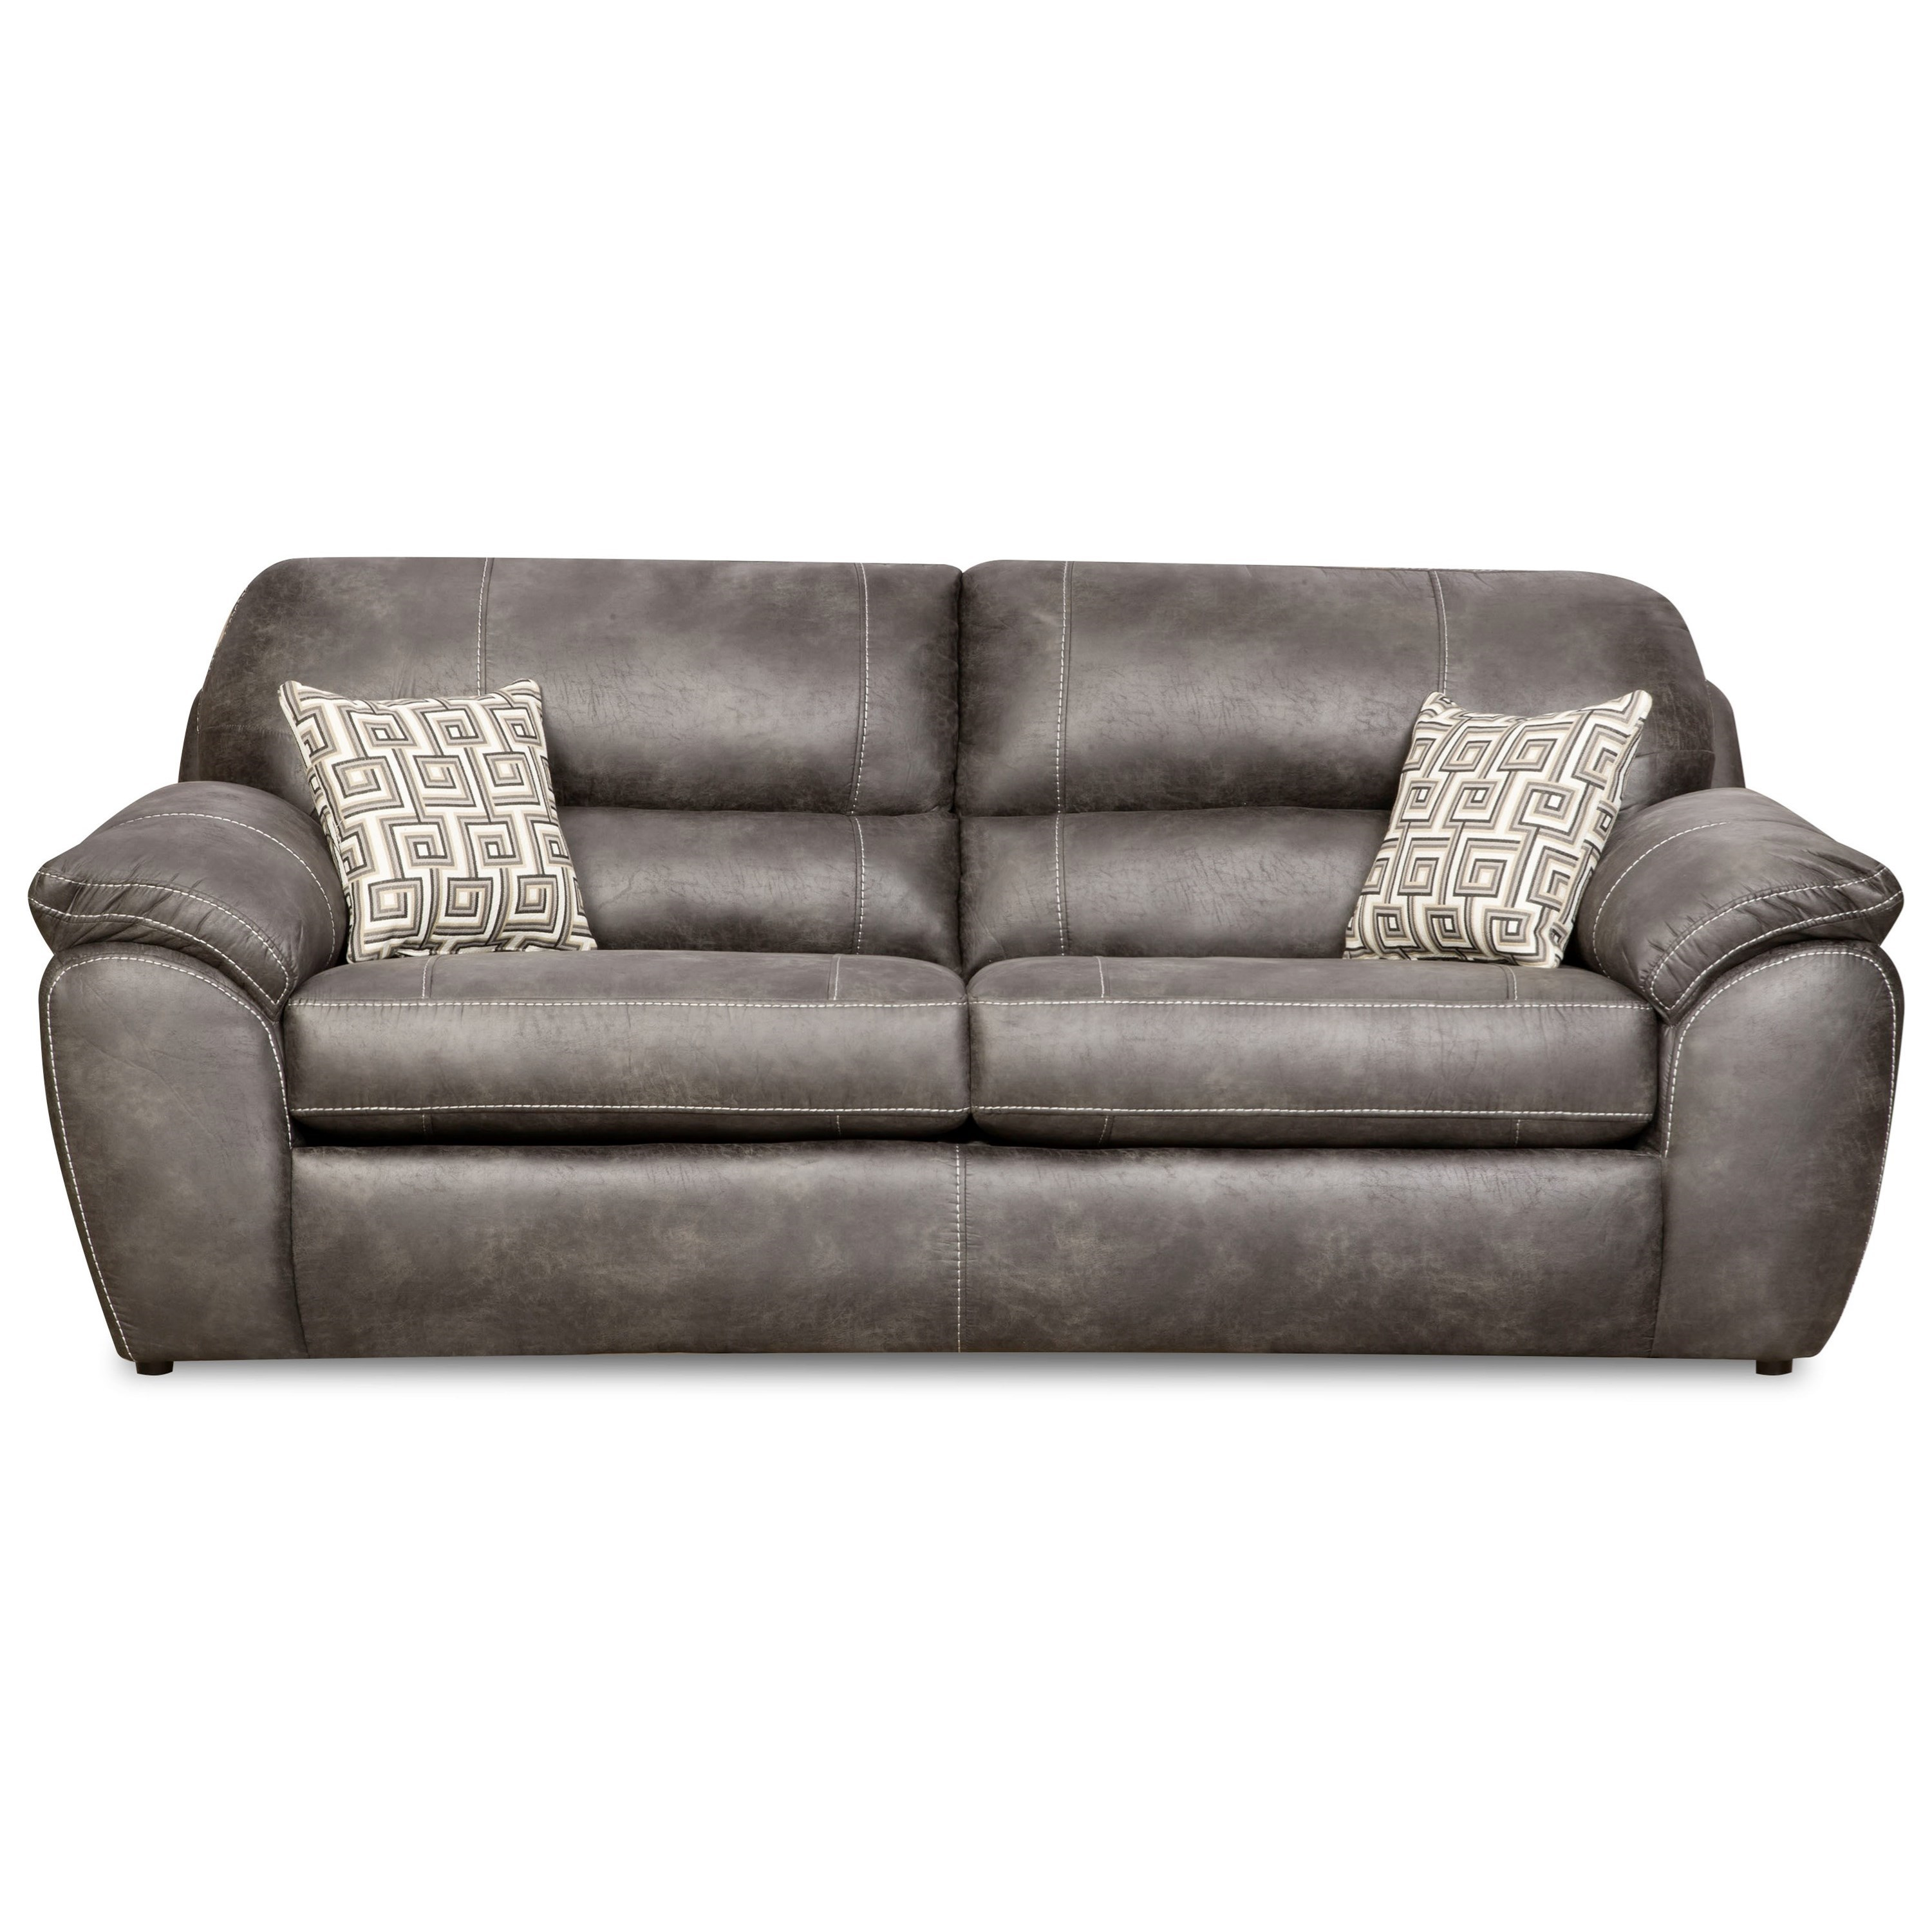 corinthian furniture sofa reviews brown room decor plush brand new grey corner with swivel